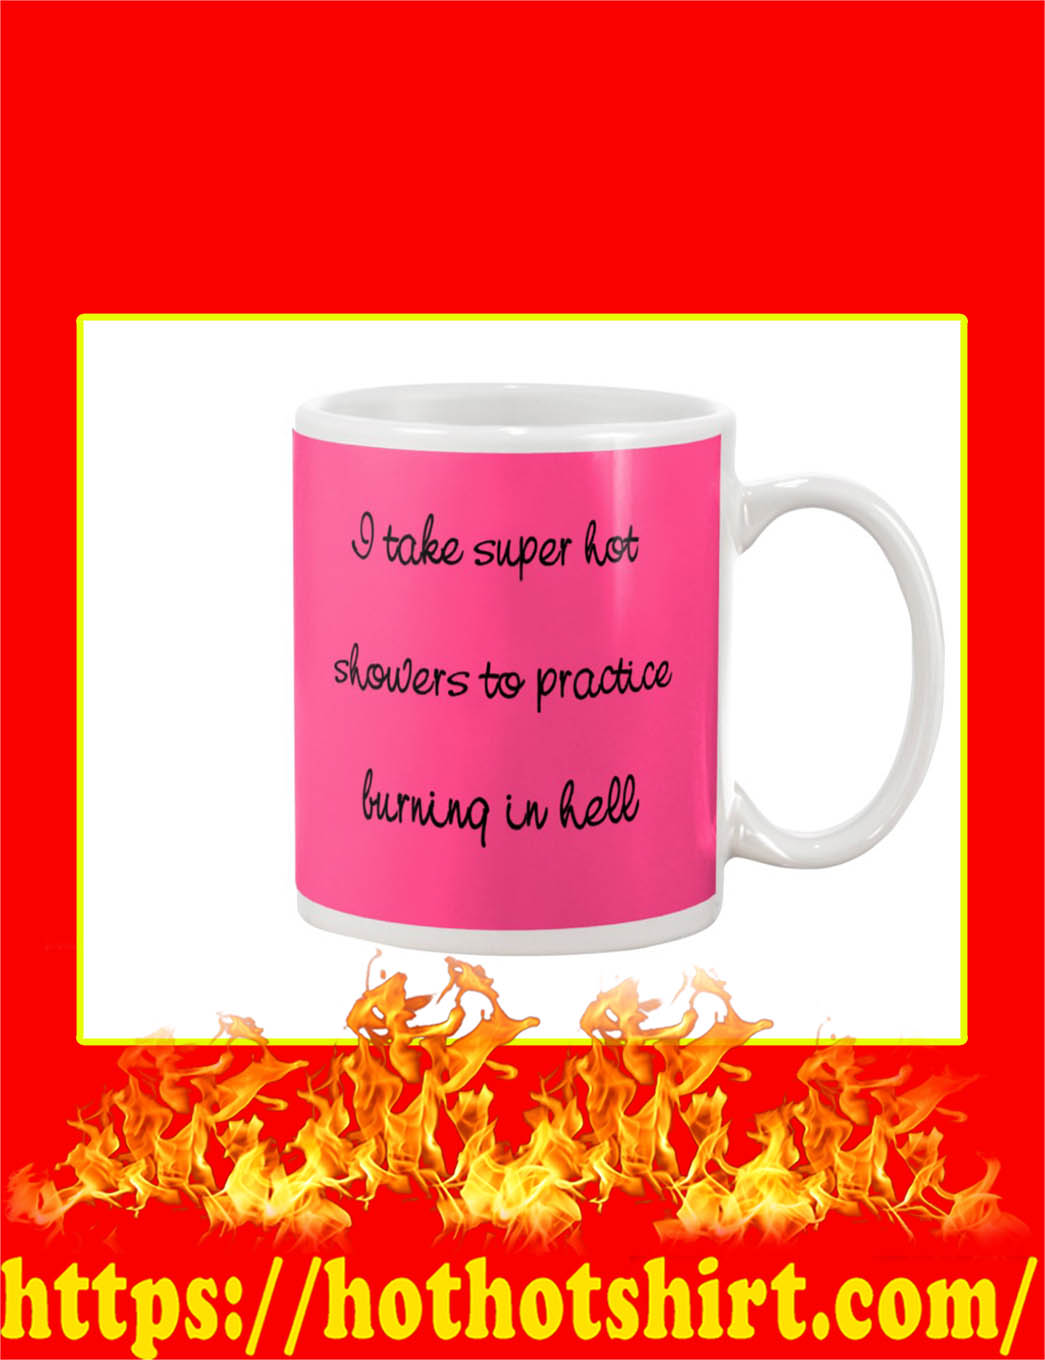 I Take Super Hot Showers To Practice Burning In Hell Mug- cyber pink